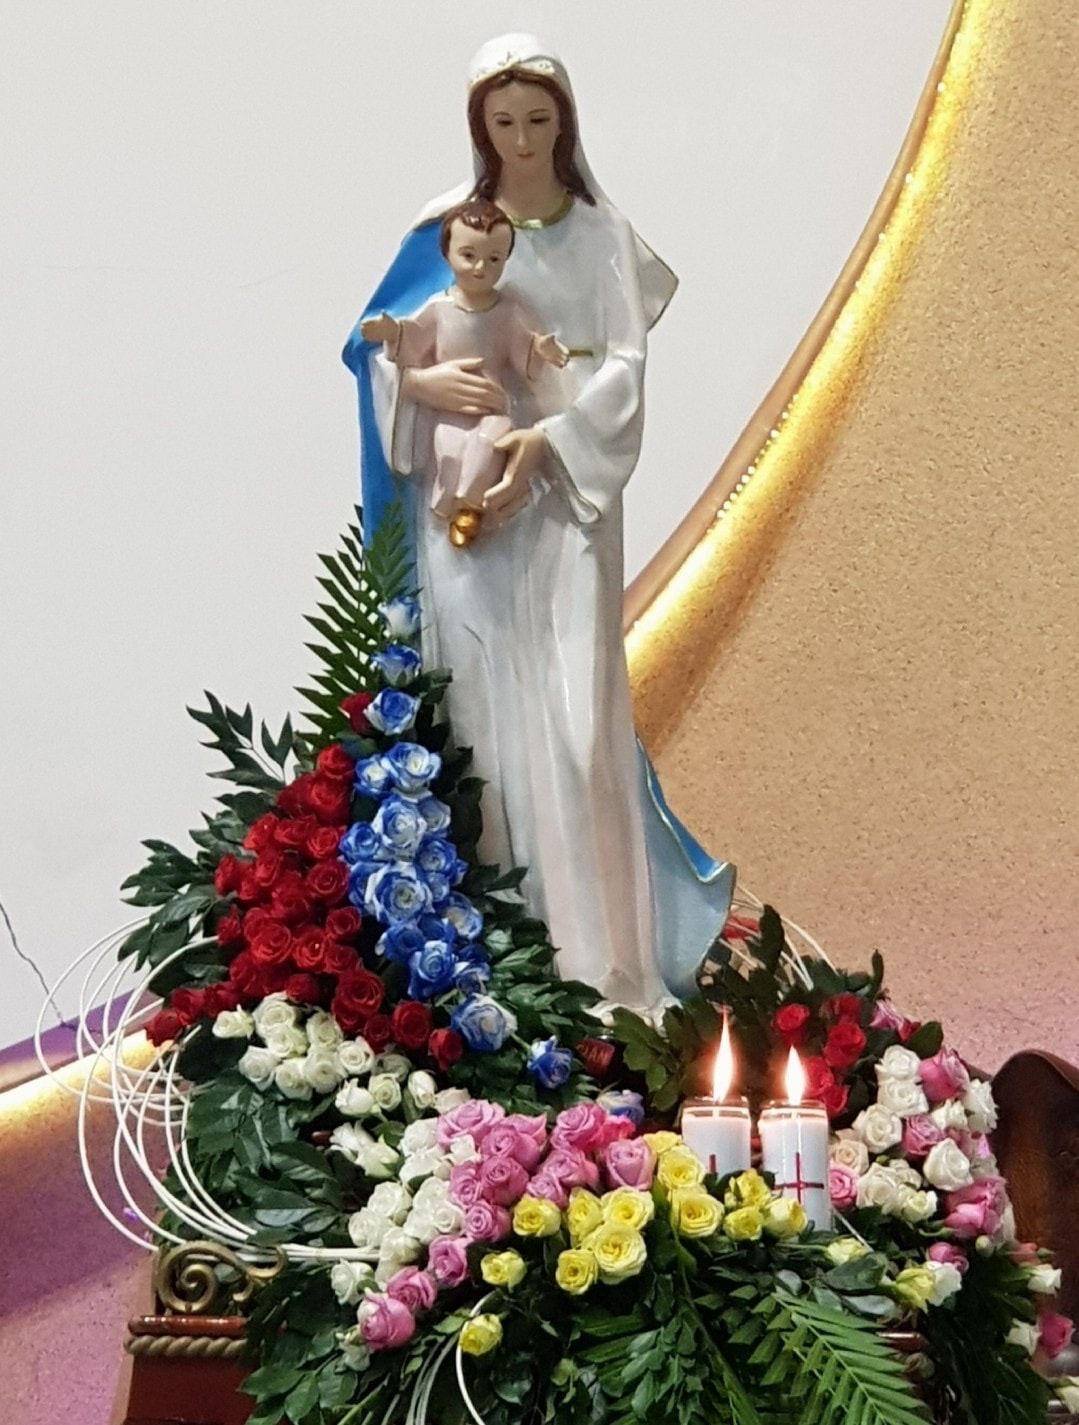 Blessed mother mary image by Maryann Mixon on Blessed